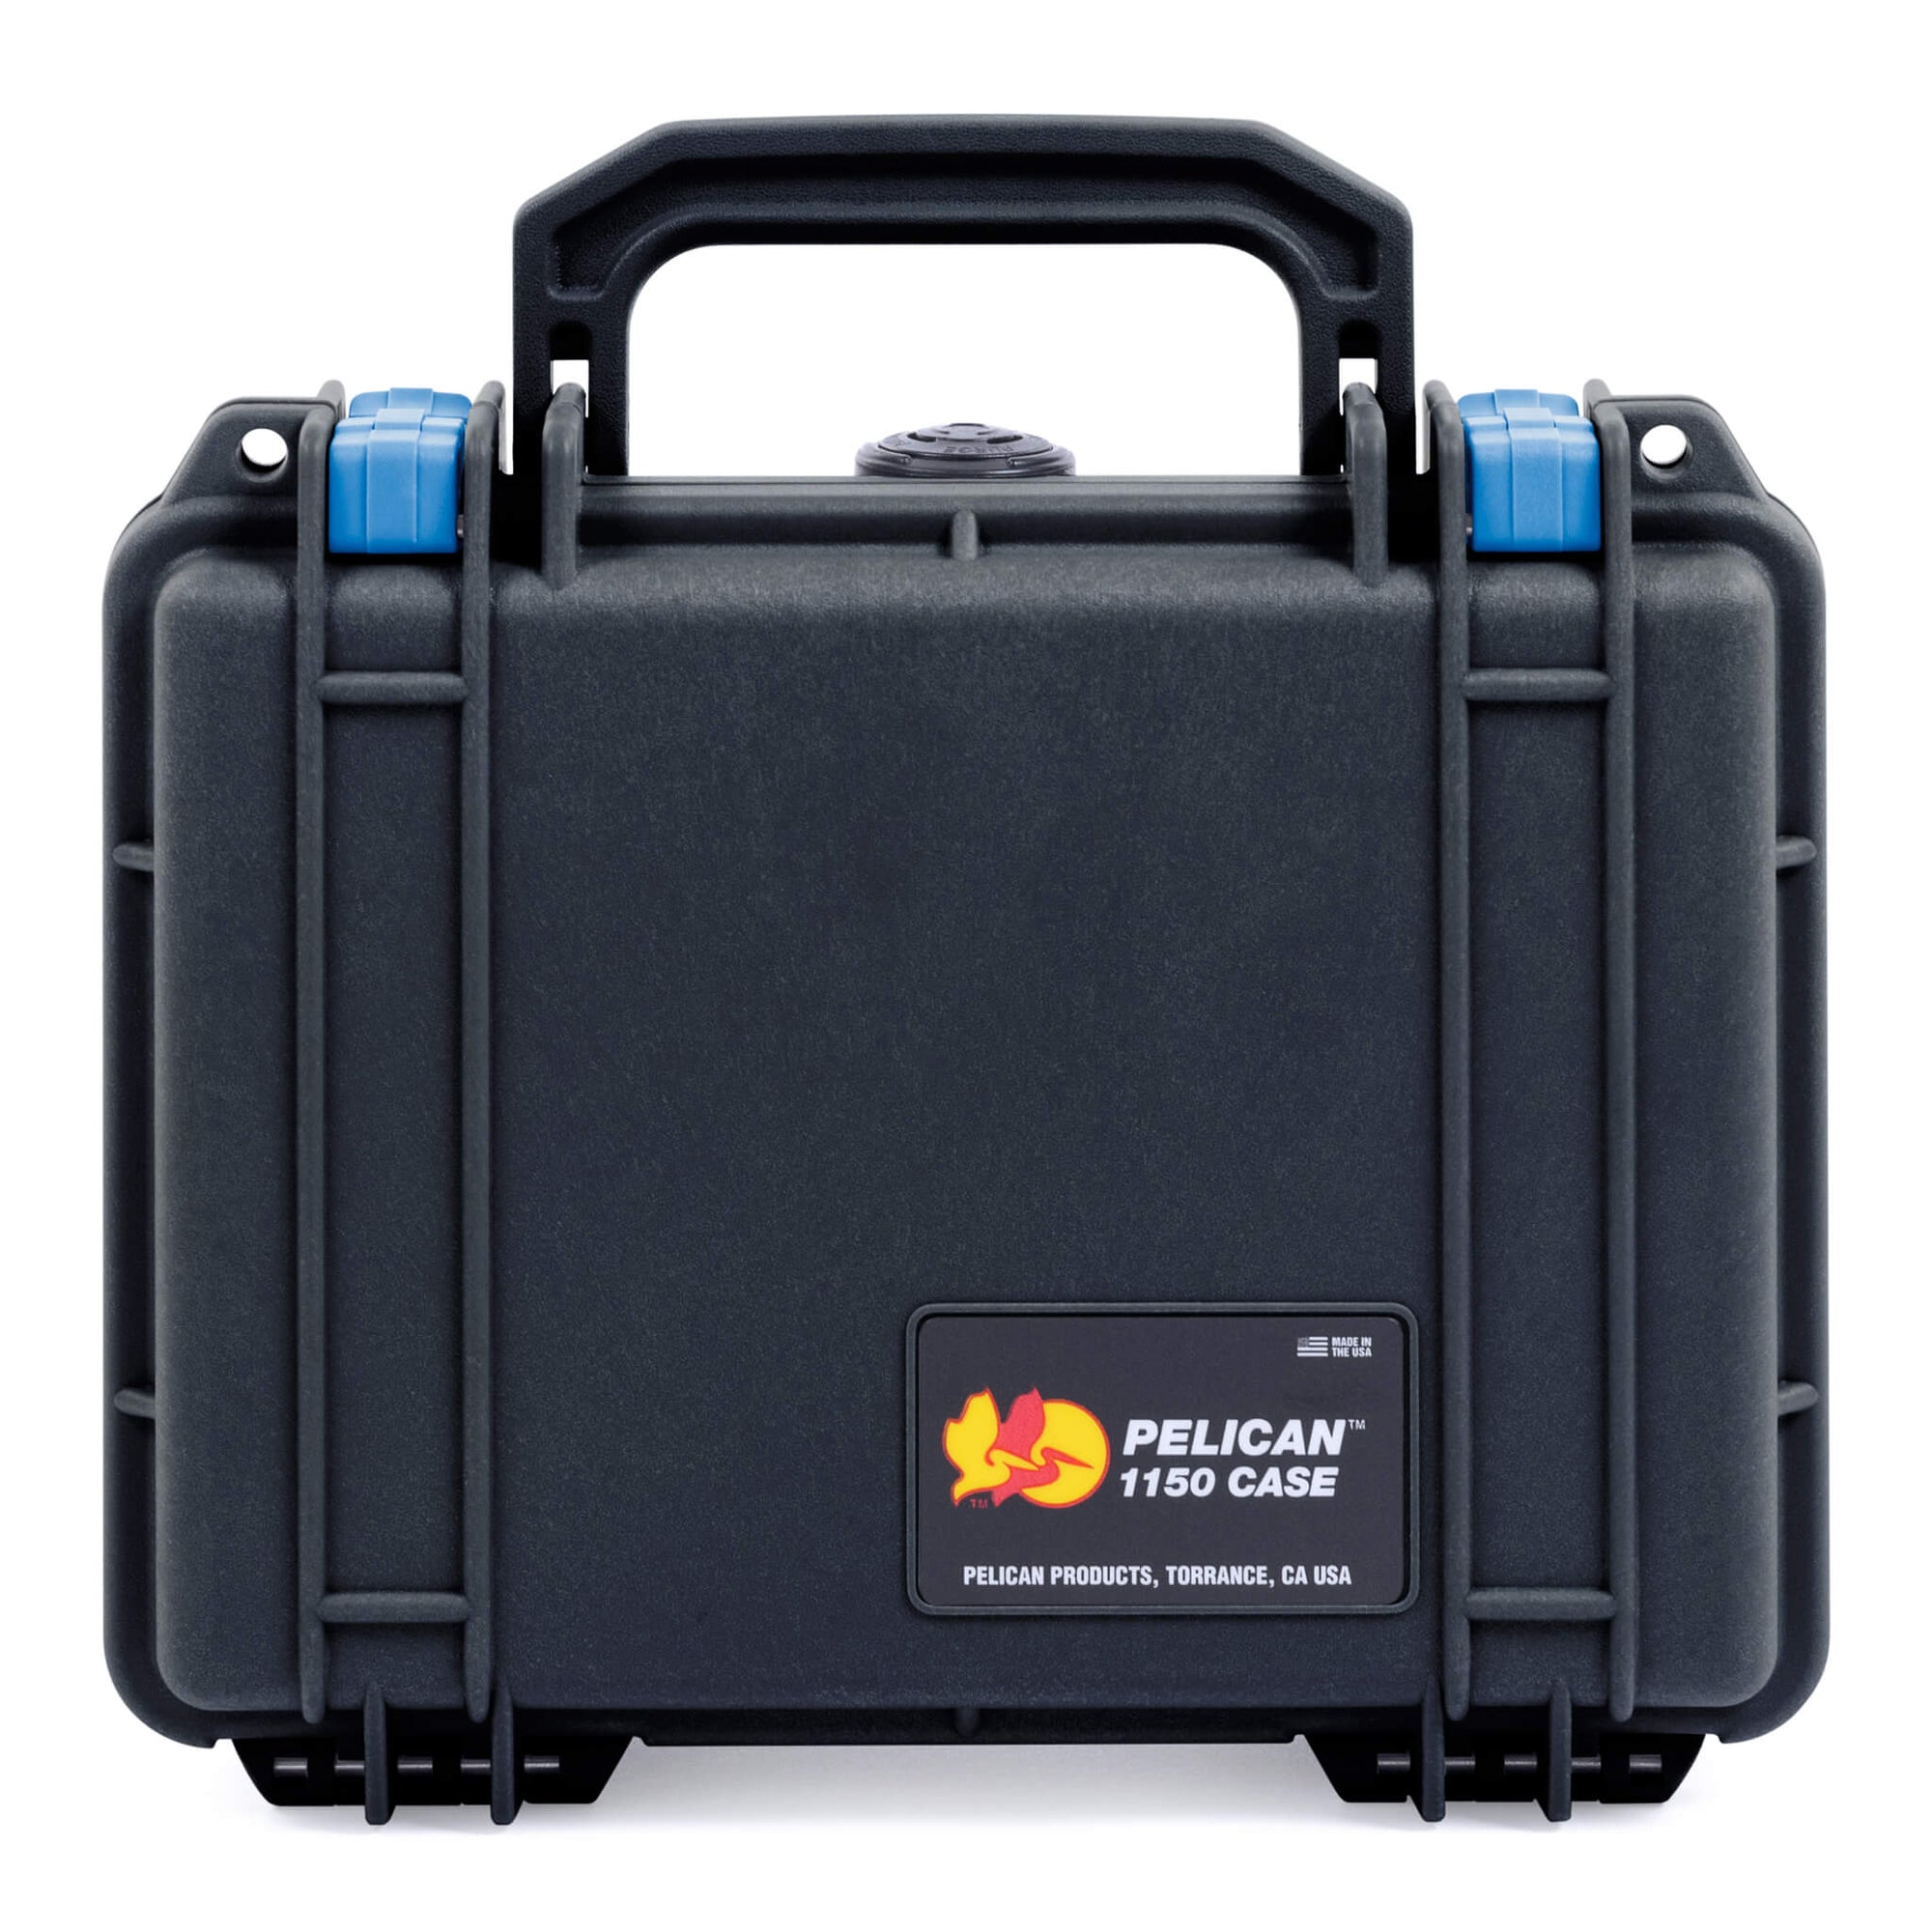 Pelican 1150 Case, Black with Blue Latches - Pelican Color Case